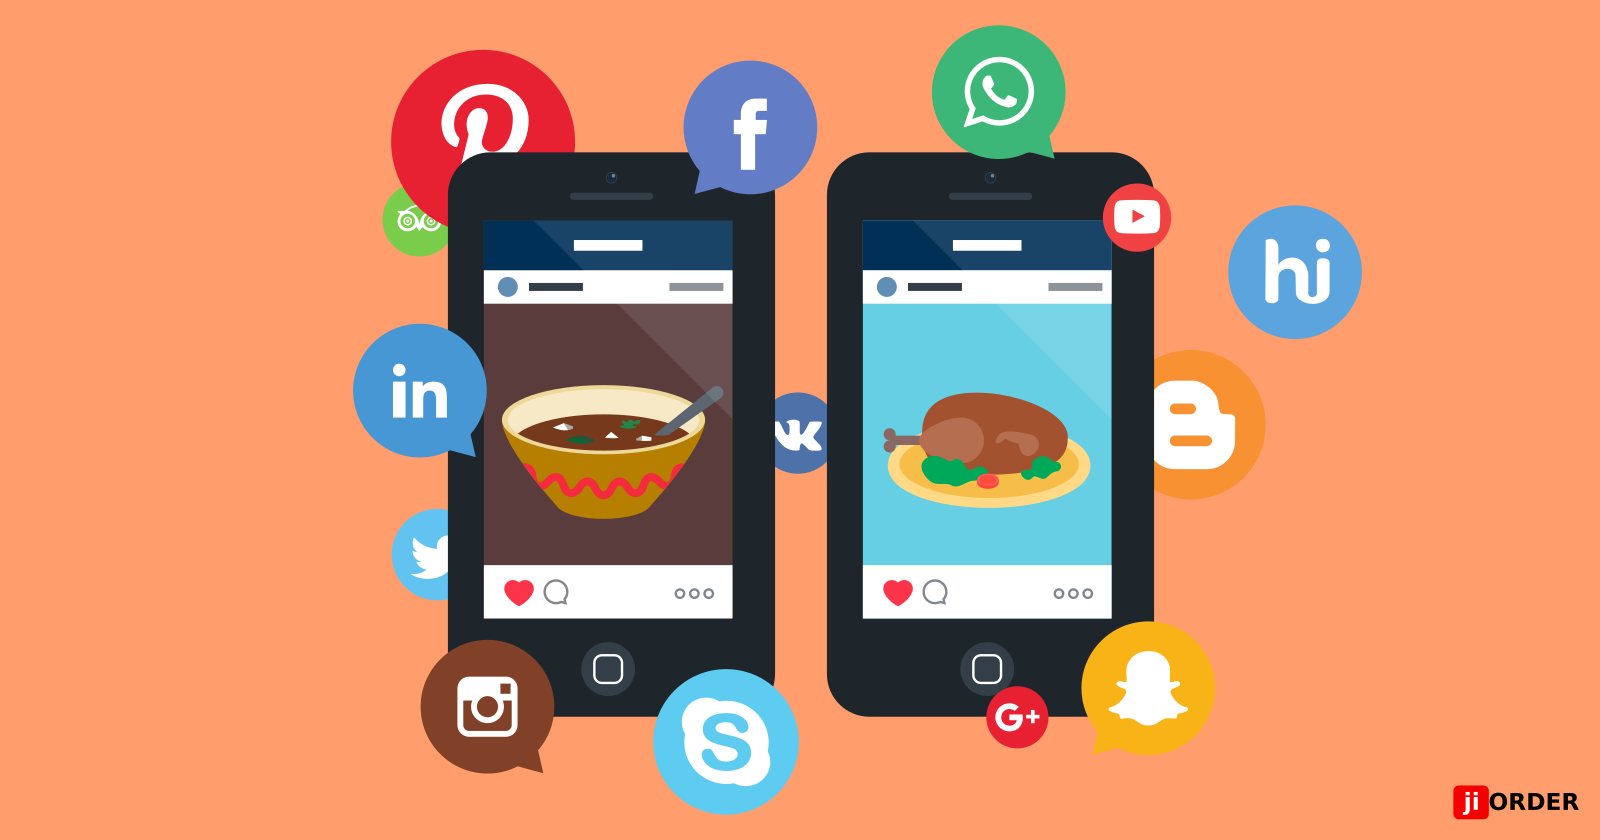 Make Your Restaurant Stand Out Using Social Media!